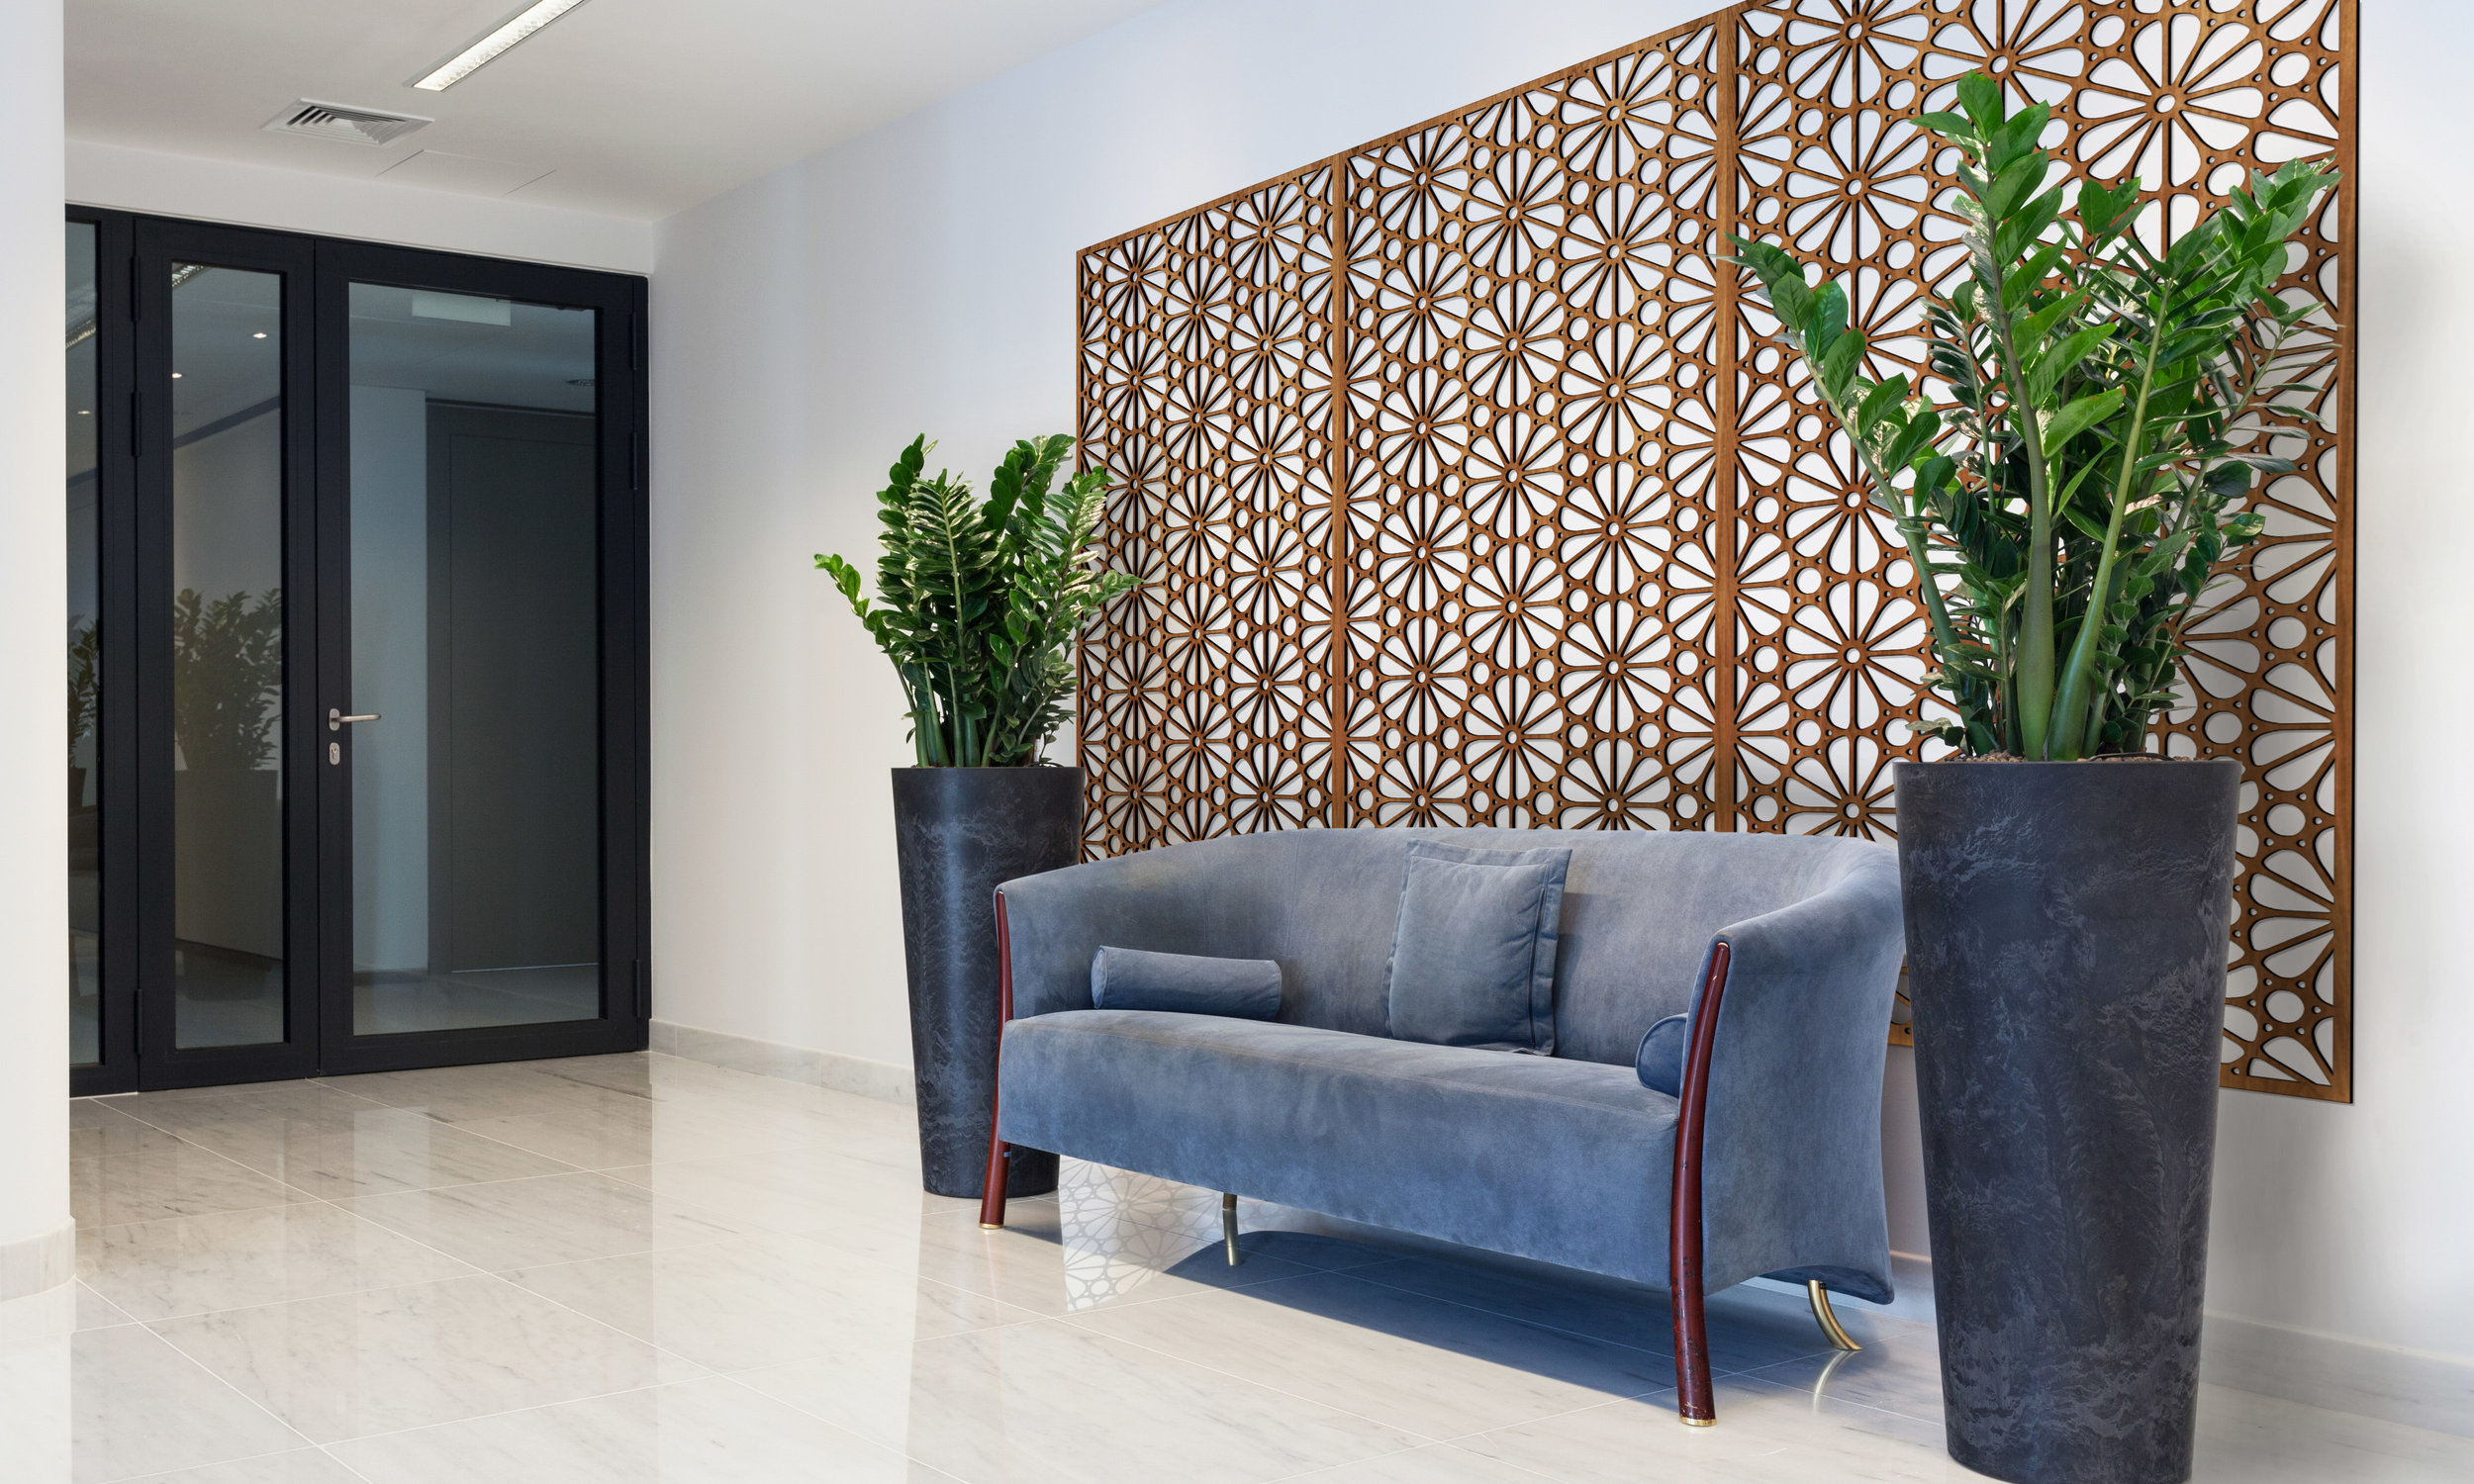 Installation Rendering A   Kyoto decorative office wall panel - shown in Cherry